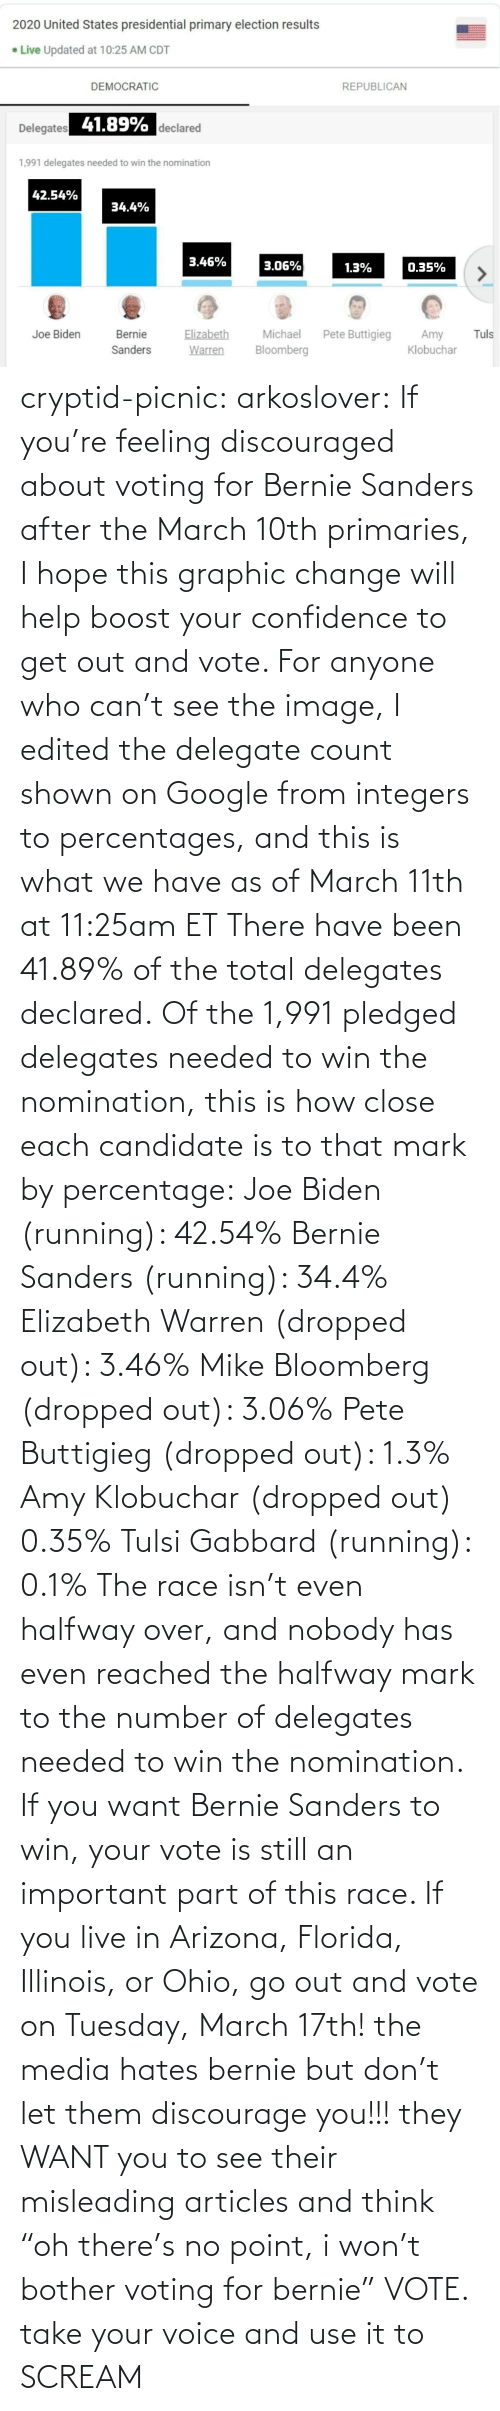 "Bernie: cryptid-picnic: arkoslover:   If you're feeling discouraged about voting for Bernie Sanders after the March 10th primaries, I hope this graphic change will help boost your confidence to get out and vote. For anyone who can't see the image, I edited the delegate count shown on Google from integers to percentages, and this is what we have as of March 11th at 11:25am ET There have been 41.89% of the total delegates declared. Of the 1,991 pledged delegates needed to win the nomination, this is how close each candidate is to that mark by percentage: Joe Biden (running): 42.54% Bernie Sanders (running): 34.4% Elizabeth Warren (dropped out): 3.46% Mike Bloomberg (dropped out): 3.06% Pete Buttigieg (dropped out): 1.3% Amy Klobuchar (dropped out) 0.35% Tulsi Gabbard (running): 0.1% The race isn't even halfway over, and nobody has even reached the halfway mark to the number of delegates needed to win the nomination. If you want Bernie Sanders to win, your vote is still an important part of this race. If you live in Arizona, Florida, Illinois, or Ohio, go out and vote on Tuesday, March 17th!    the media hates bernie but don't let them discourage you!!! they WANT you to see their misleading articles and think ""oh there's no point, i won't bother voting for bernie"" VOTE. take your voice and use it to SCREAM"